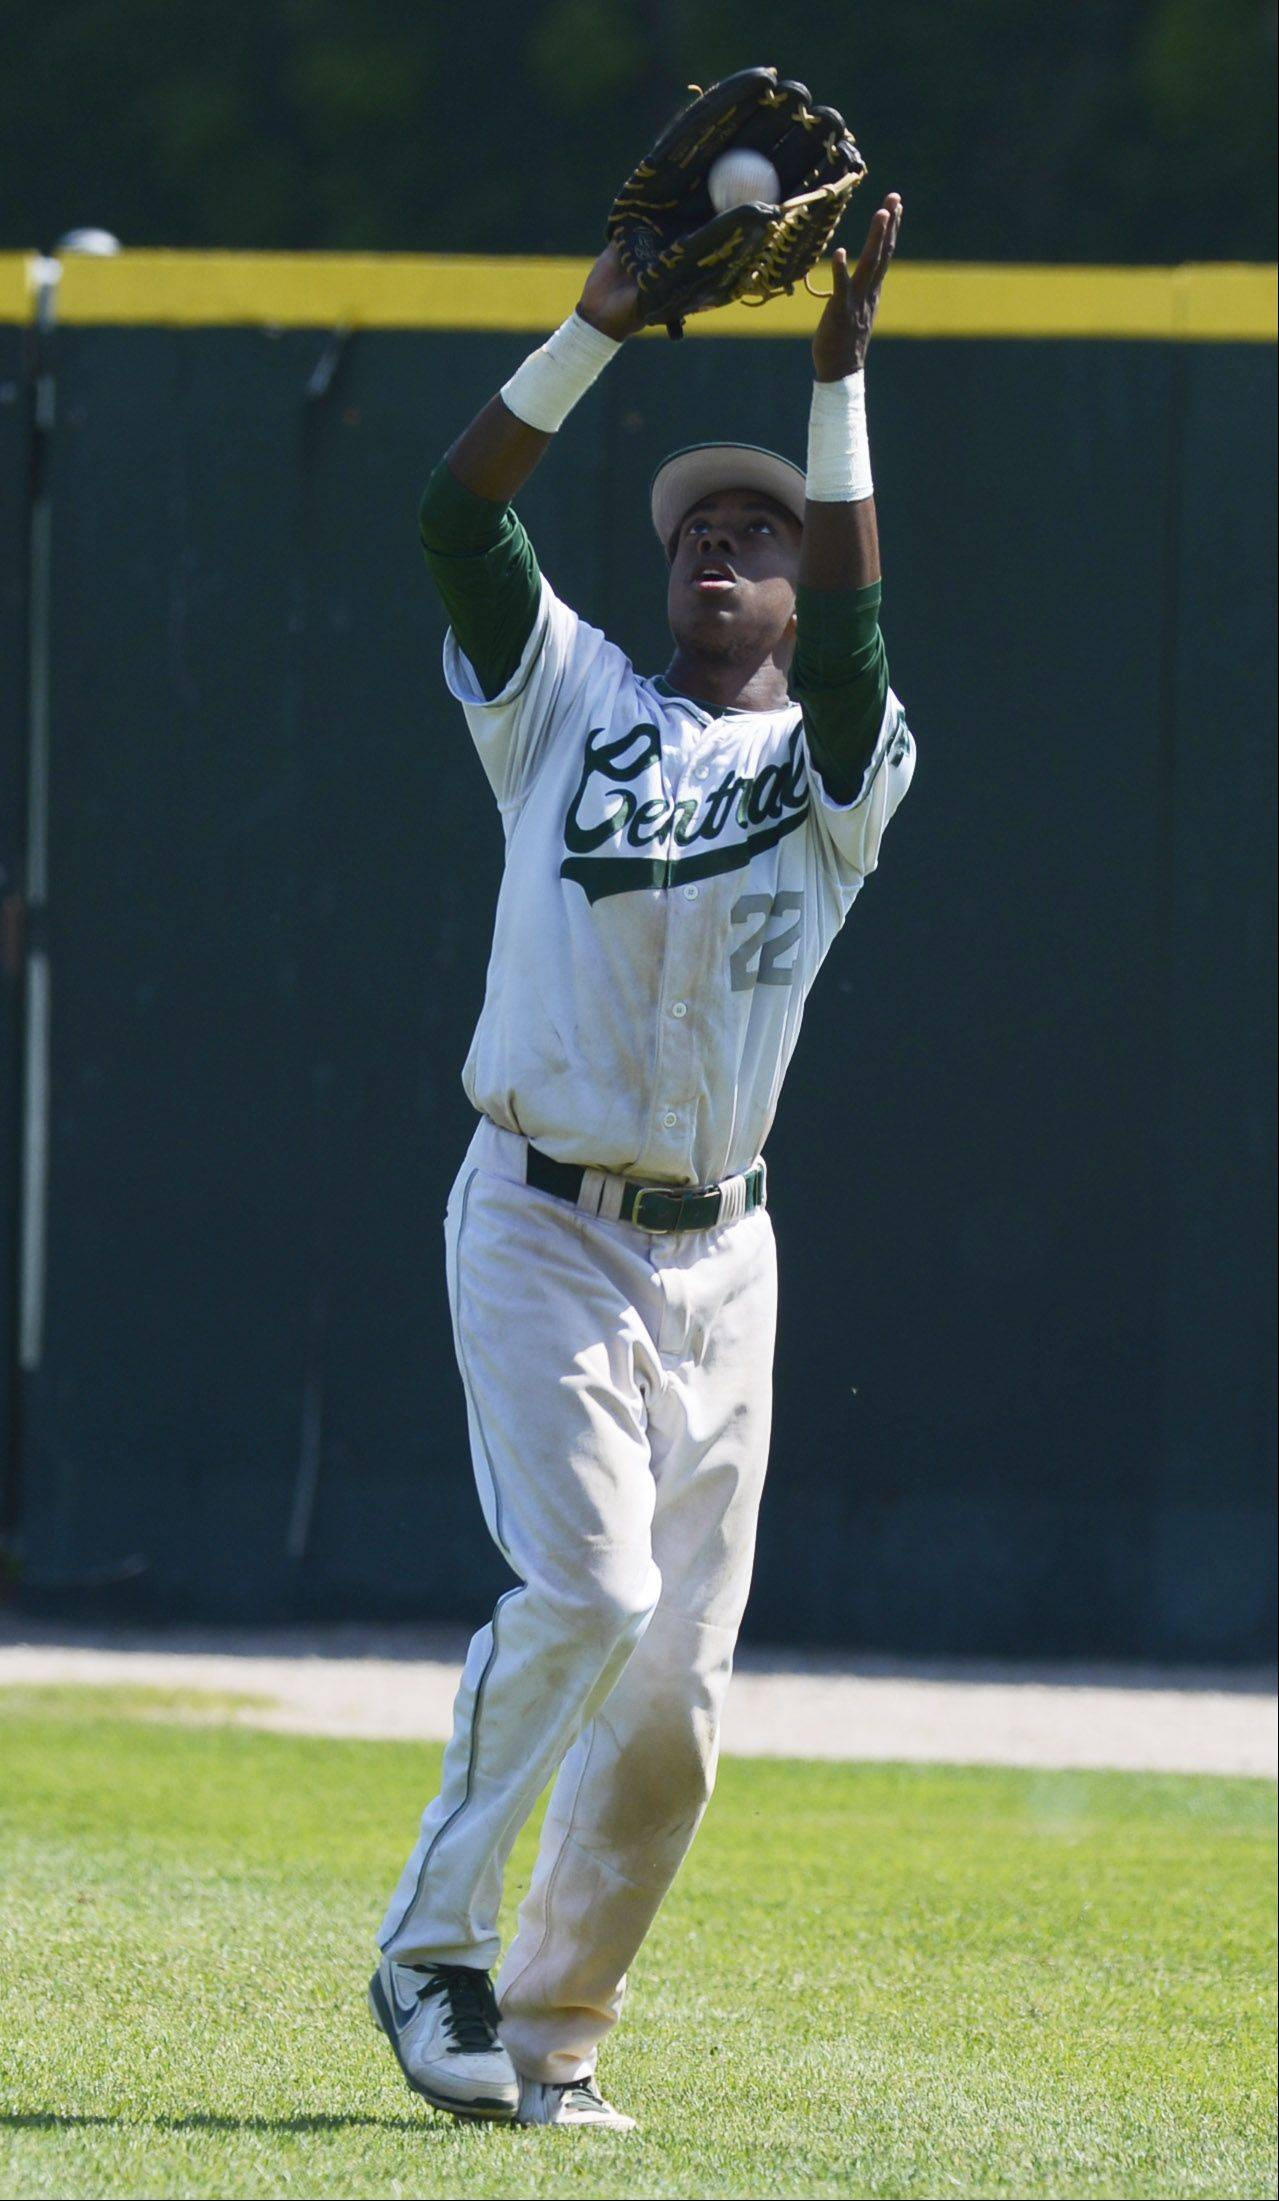 Grayslake Central right fielder Sterling Dixon hauls in a fly ball during the Class 3A state baseball semifinal against St. Francis at Silver Cross Field in Joliet Friday.